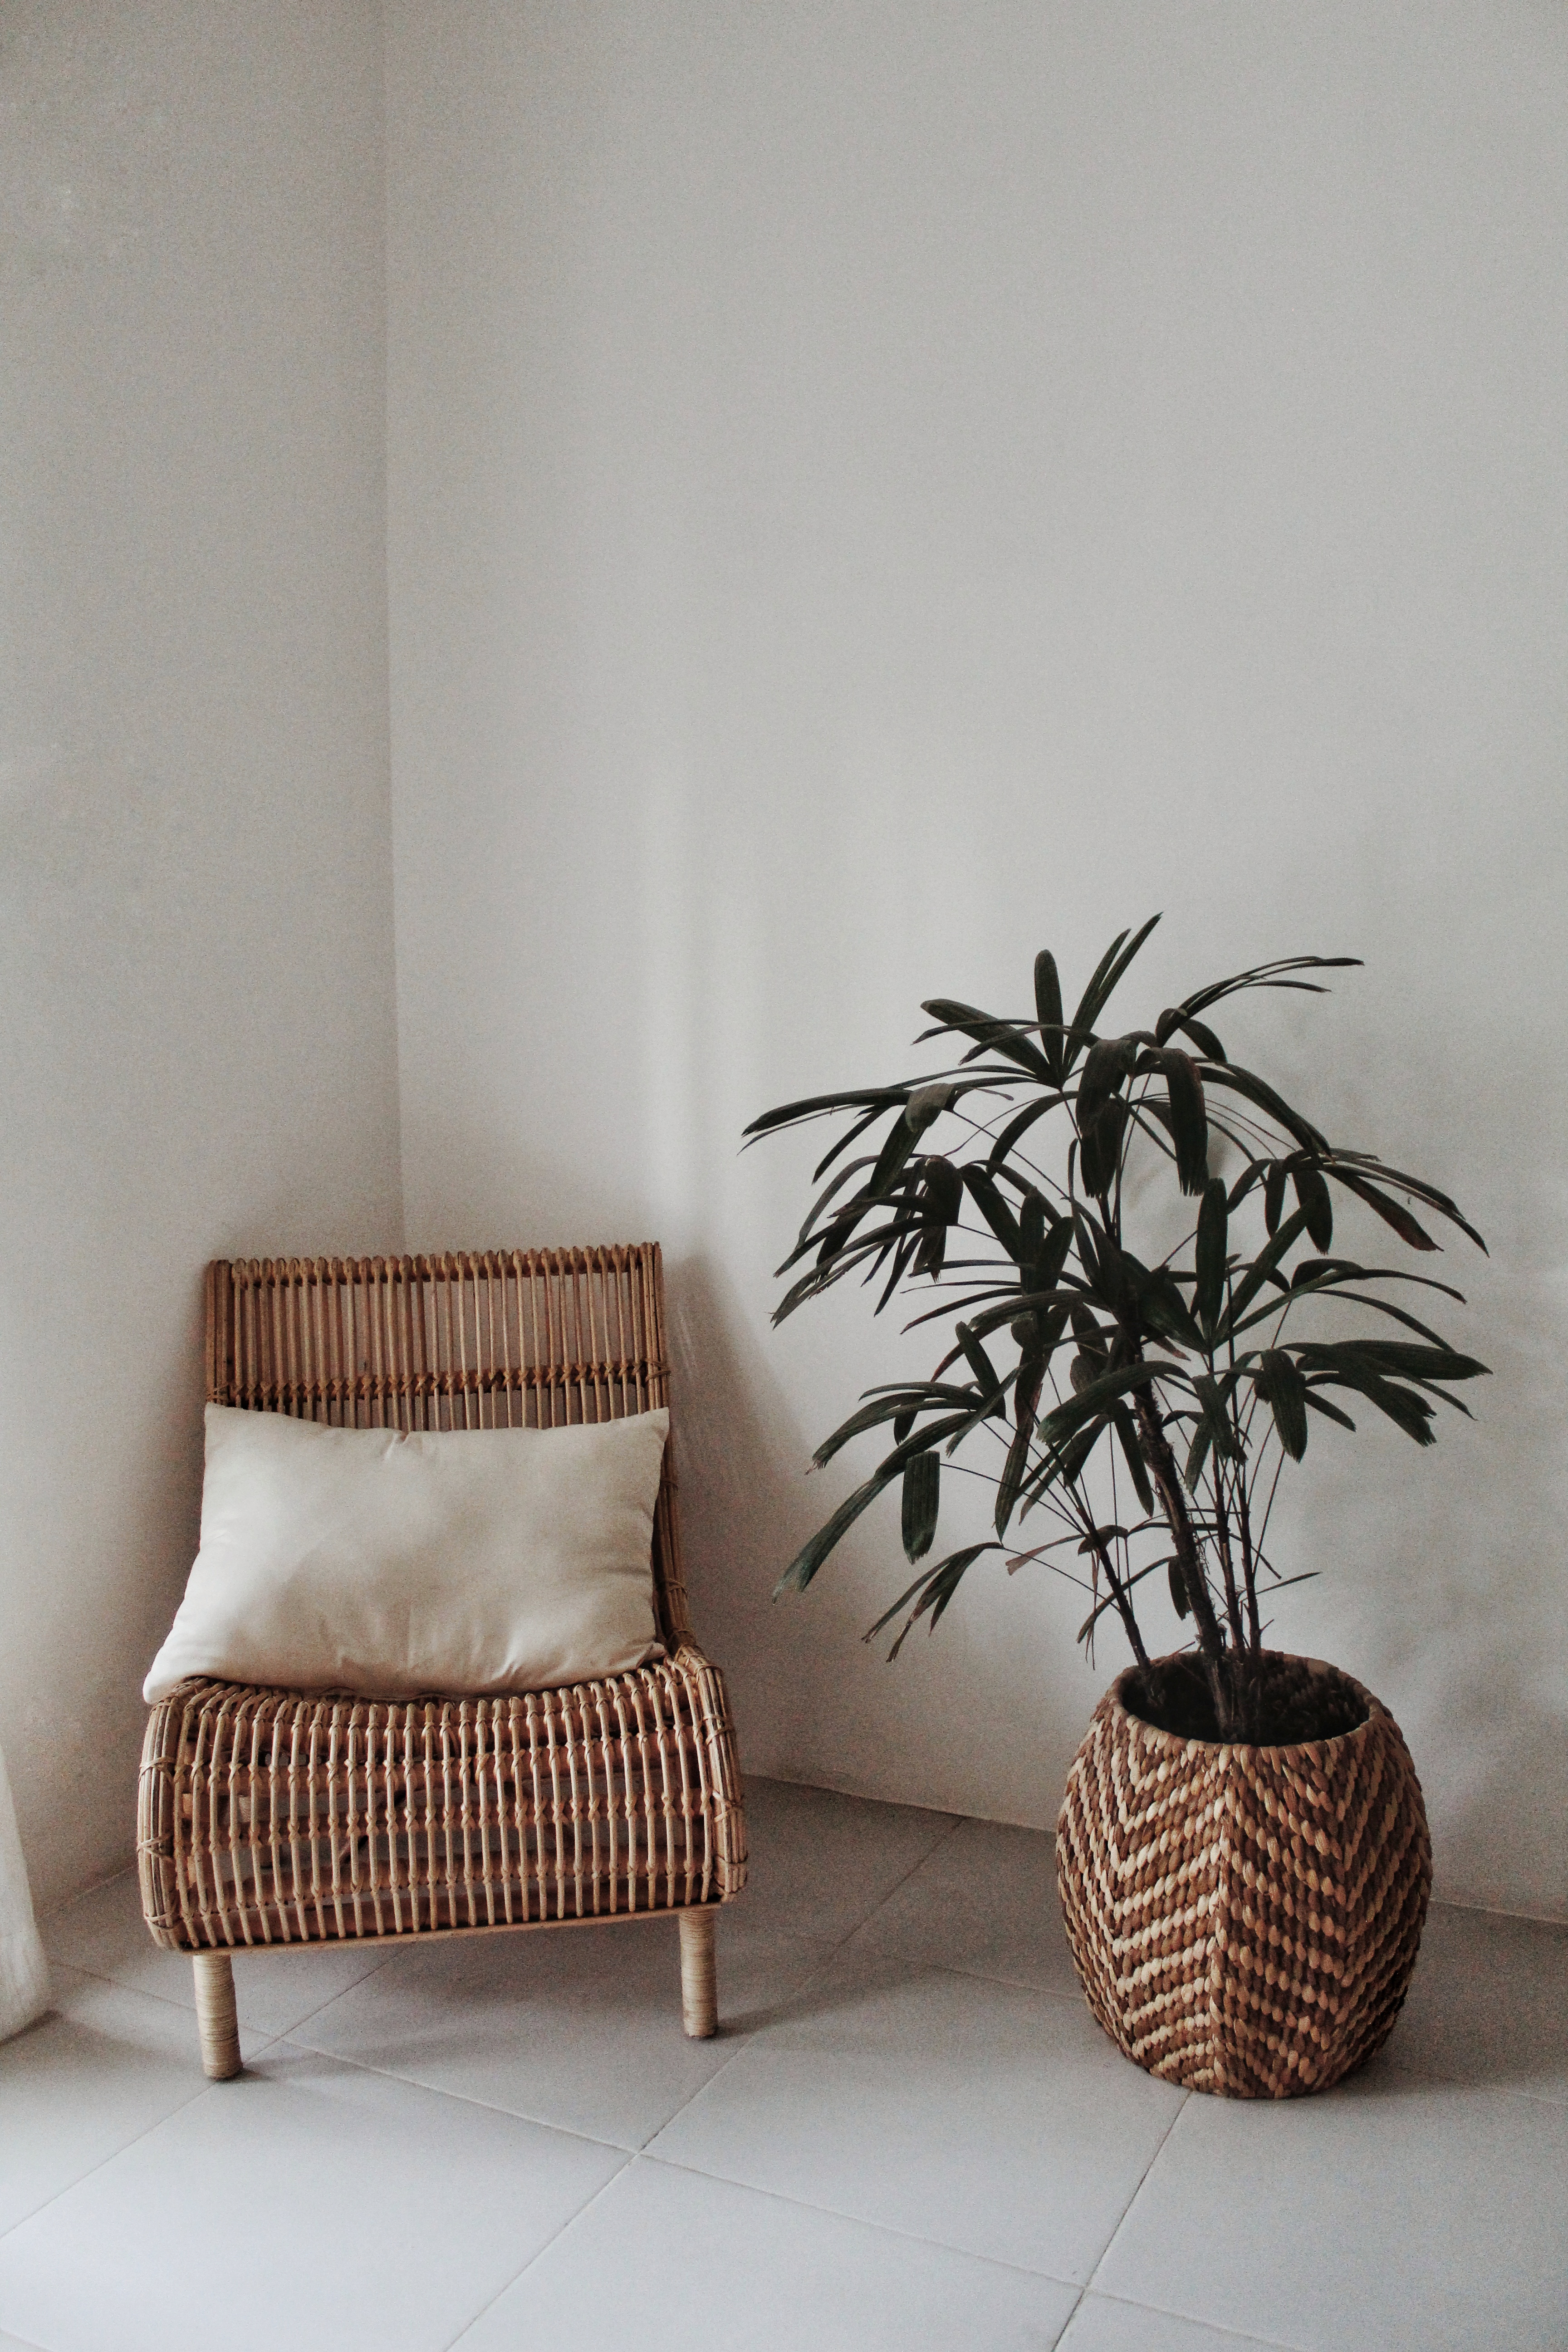 bamboo chair and green plant